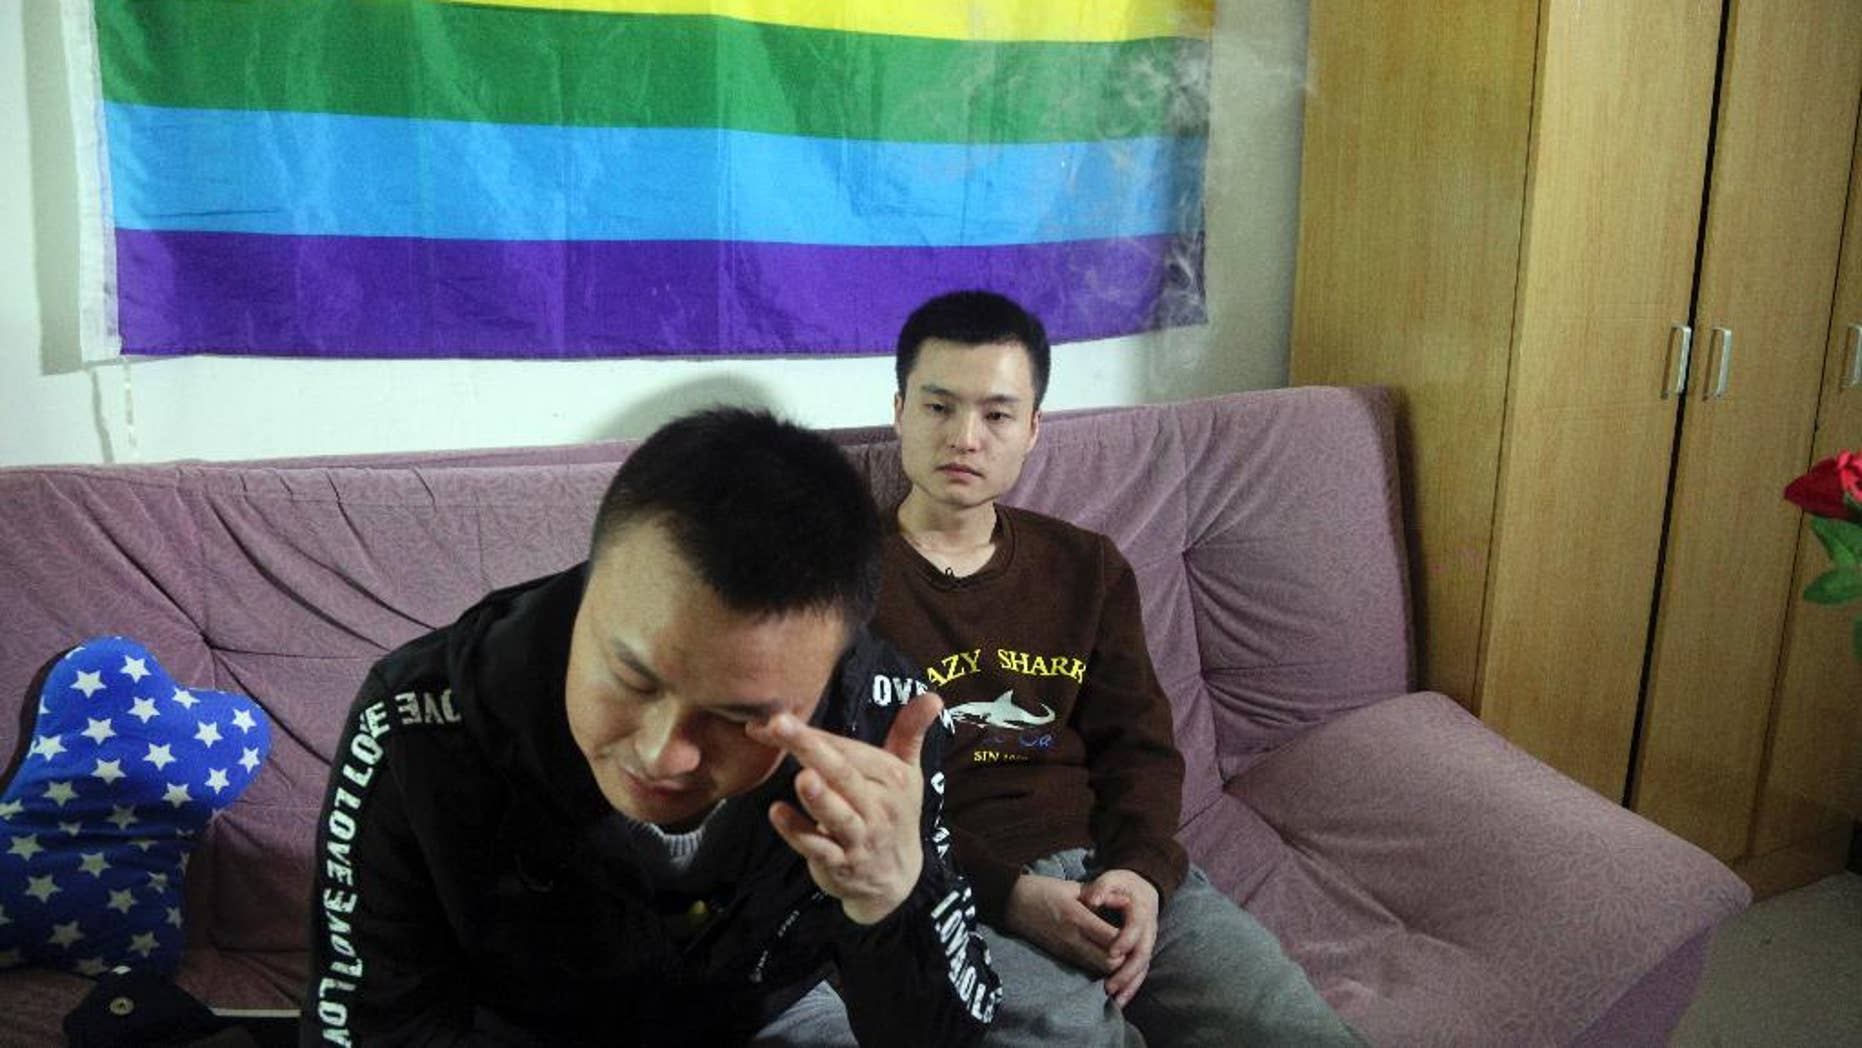 Sun Wenlin, right, sits with his partner Hu Mingliang at home.